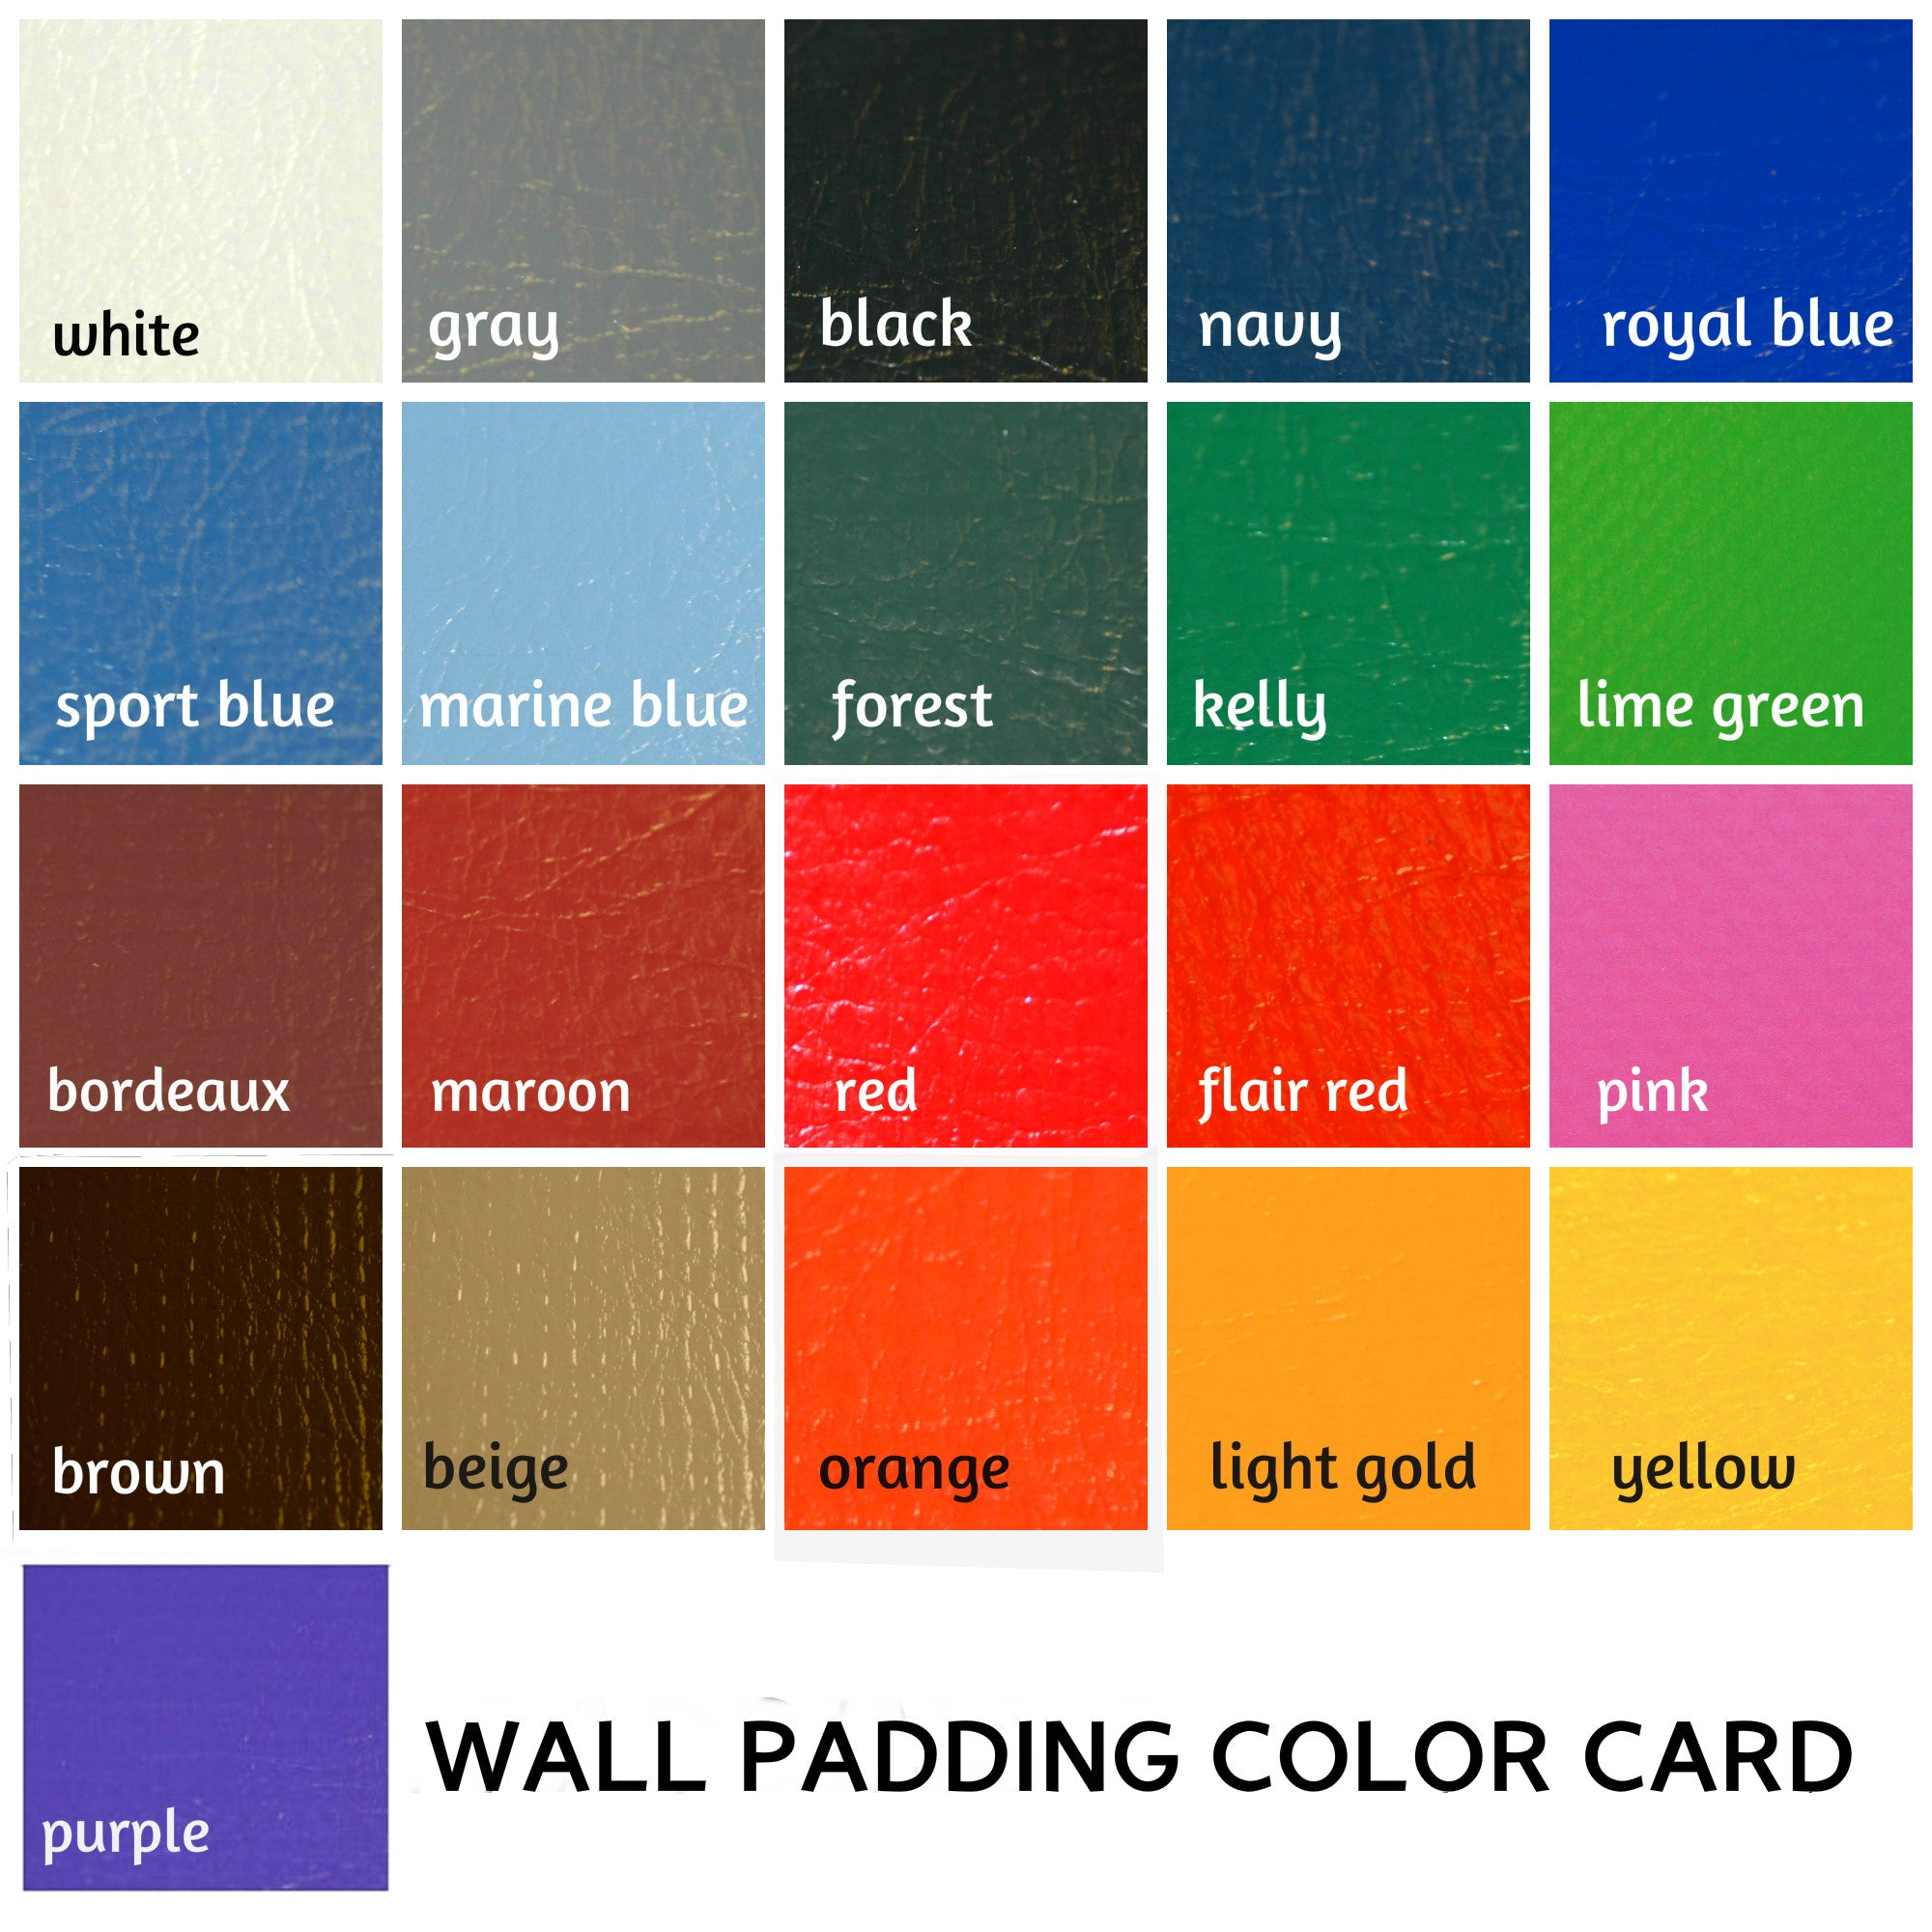 Wall Padding Colors